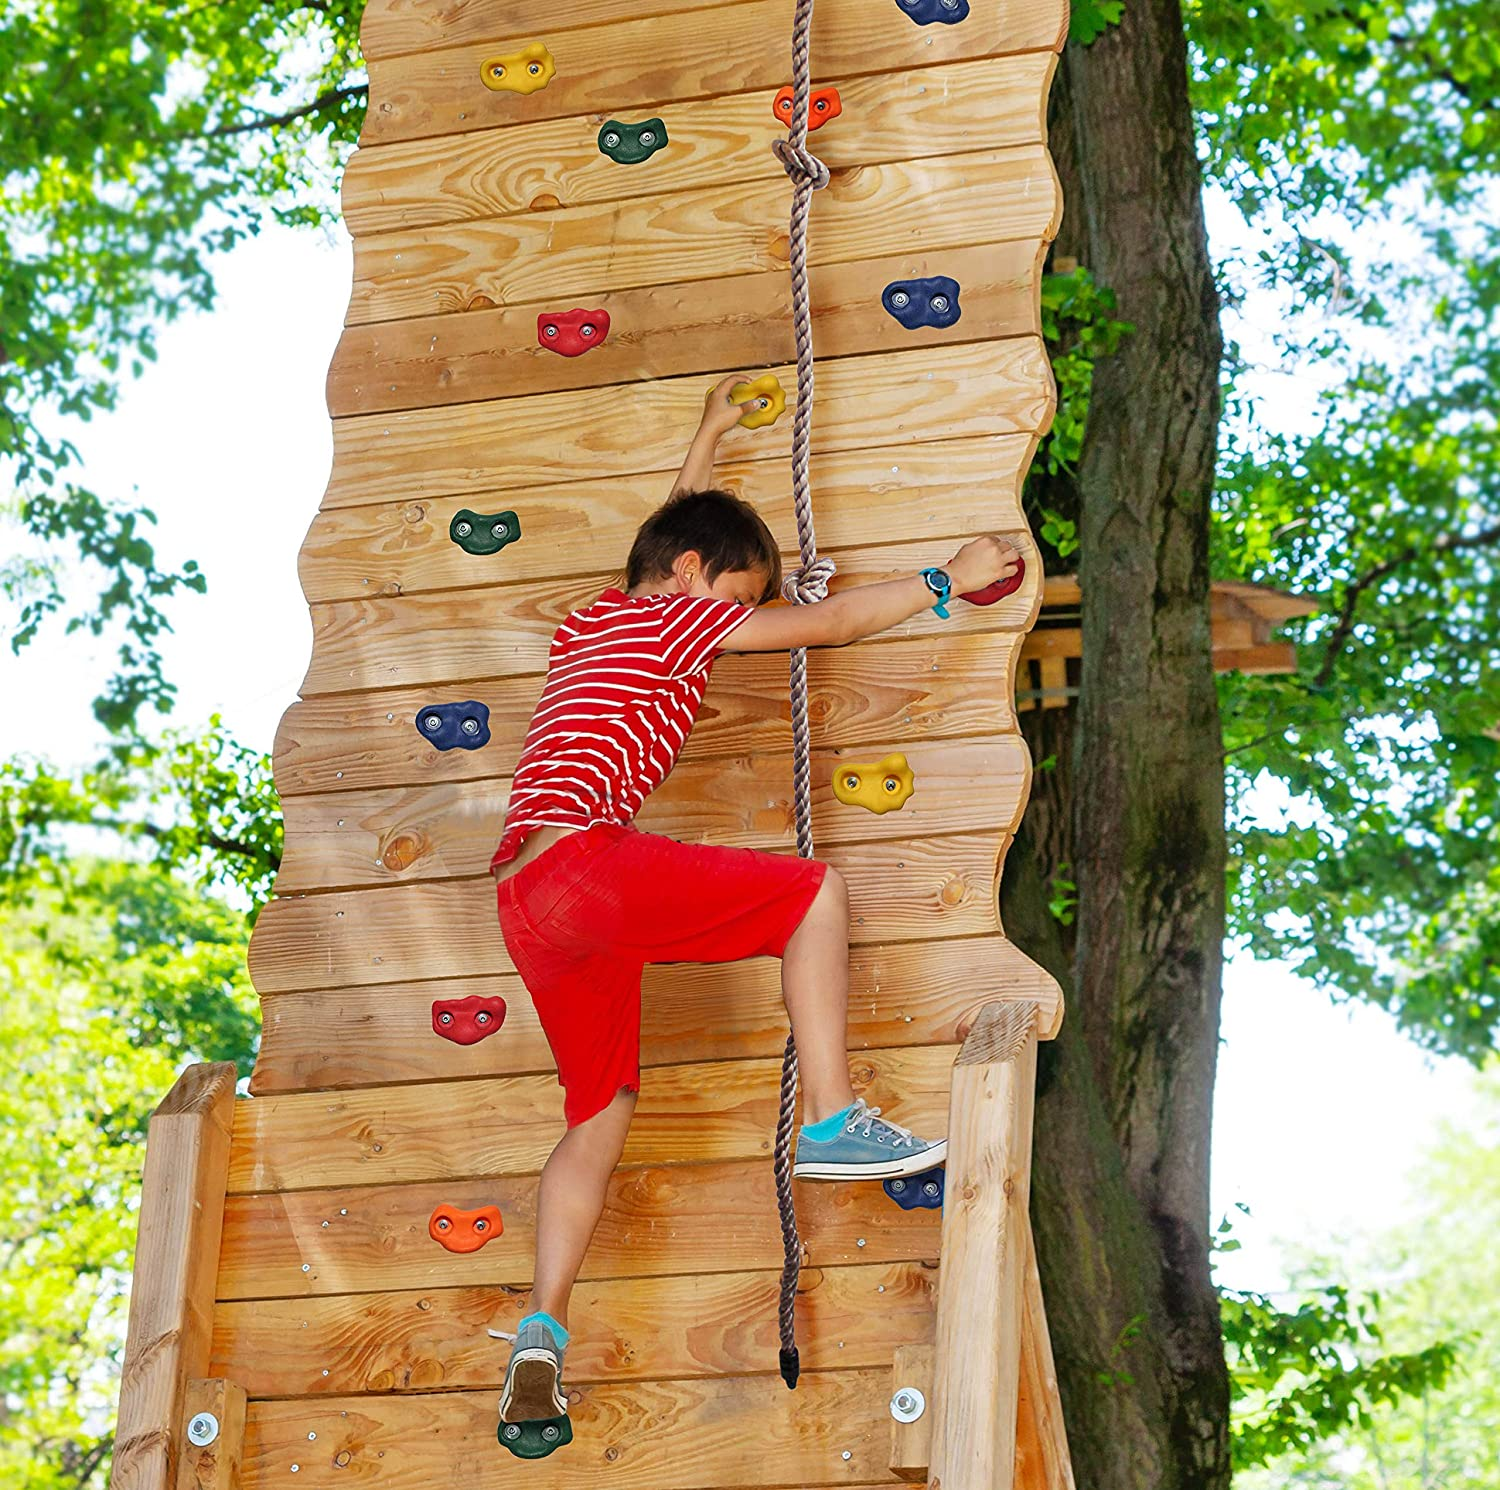 Jungle Gym Kingdom DIY 25 Rock Climbing Holds with Robust 8 Foot Knotted Rope for Childrens Playground Wall Kids Indoor Outdoor Play Sets with Mounting Hardware